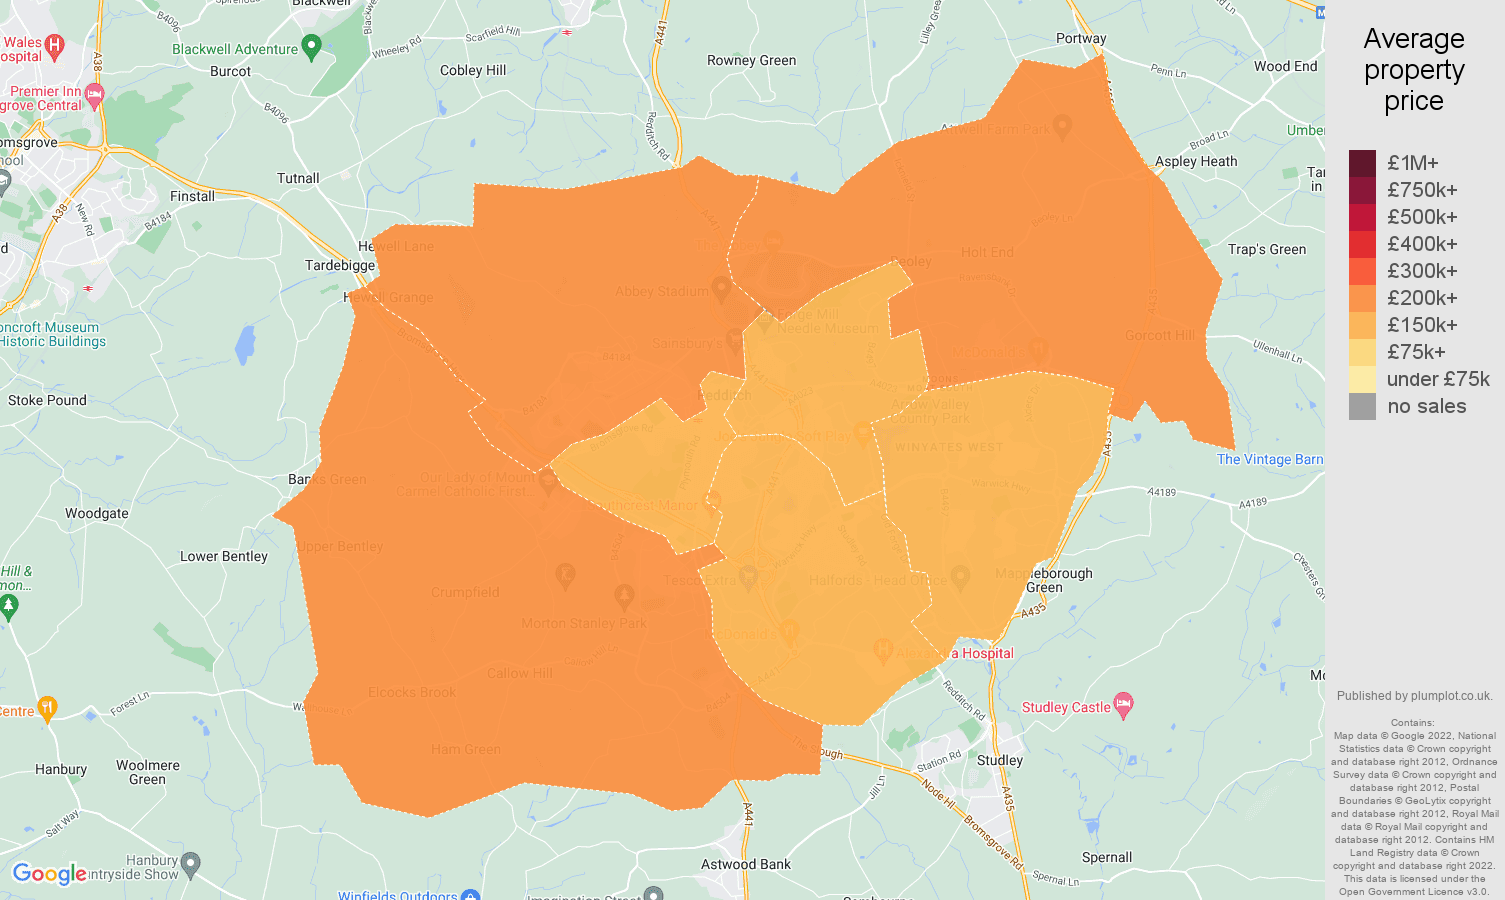 Redditch house prices map